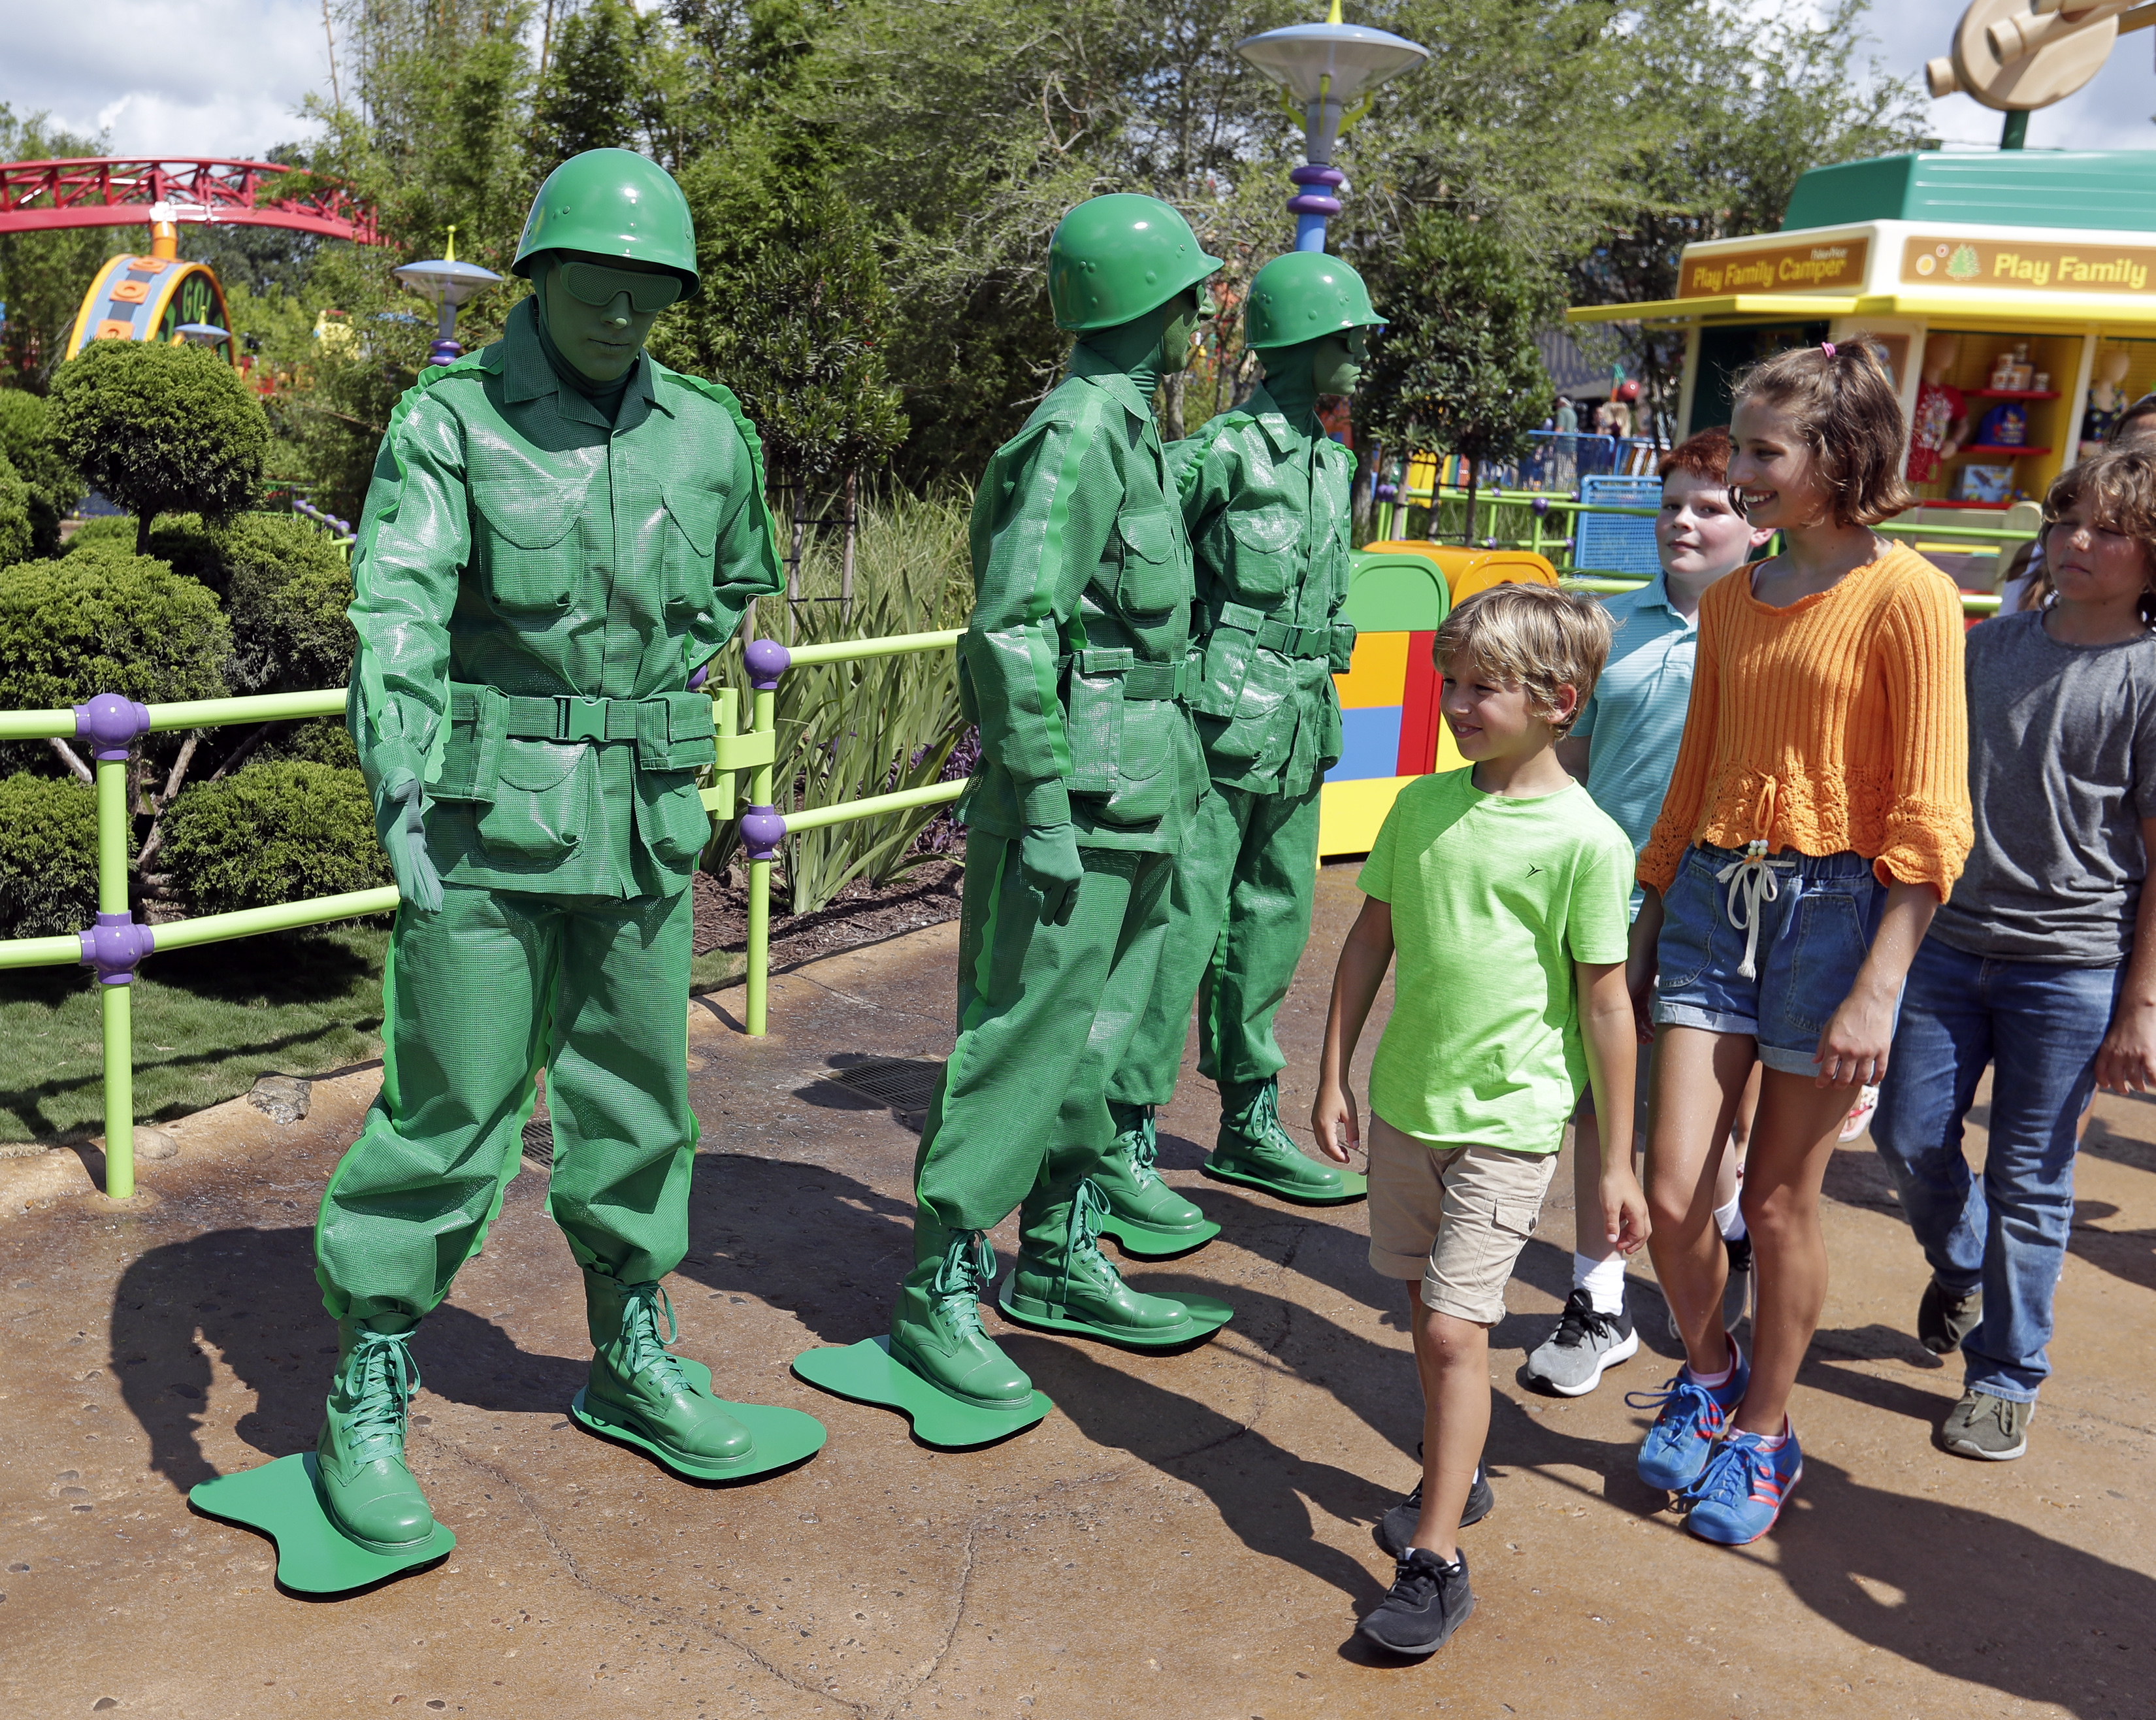 Arkansas girl jump-starts campaign for female plastic toy soldiers